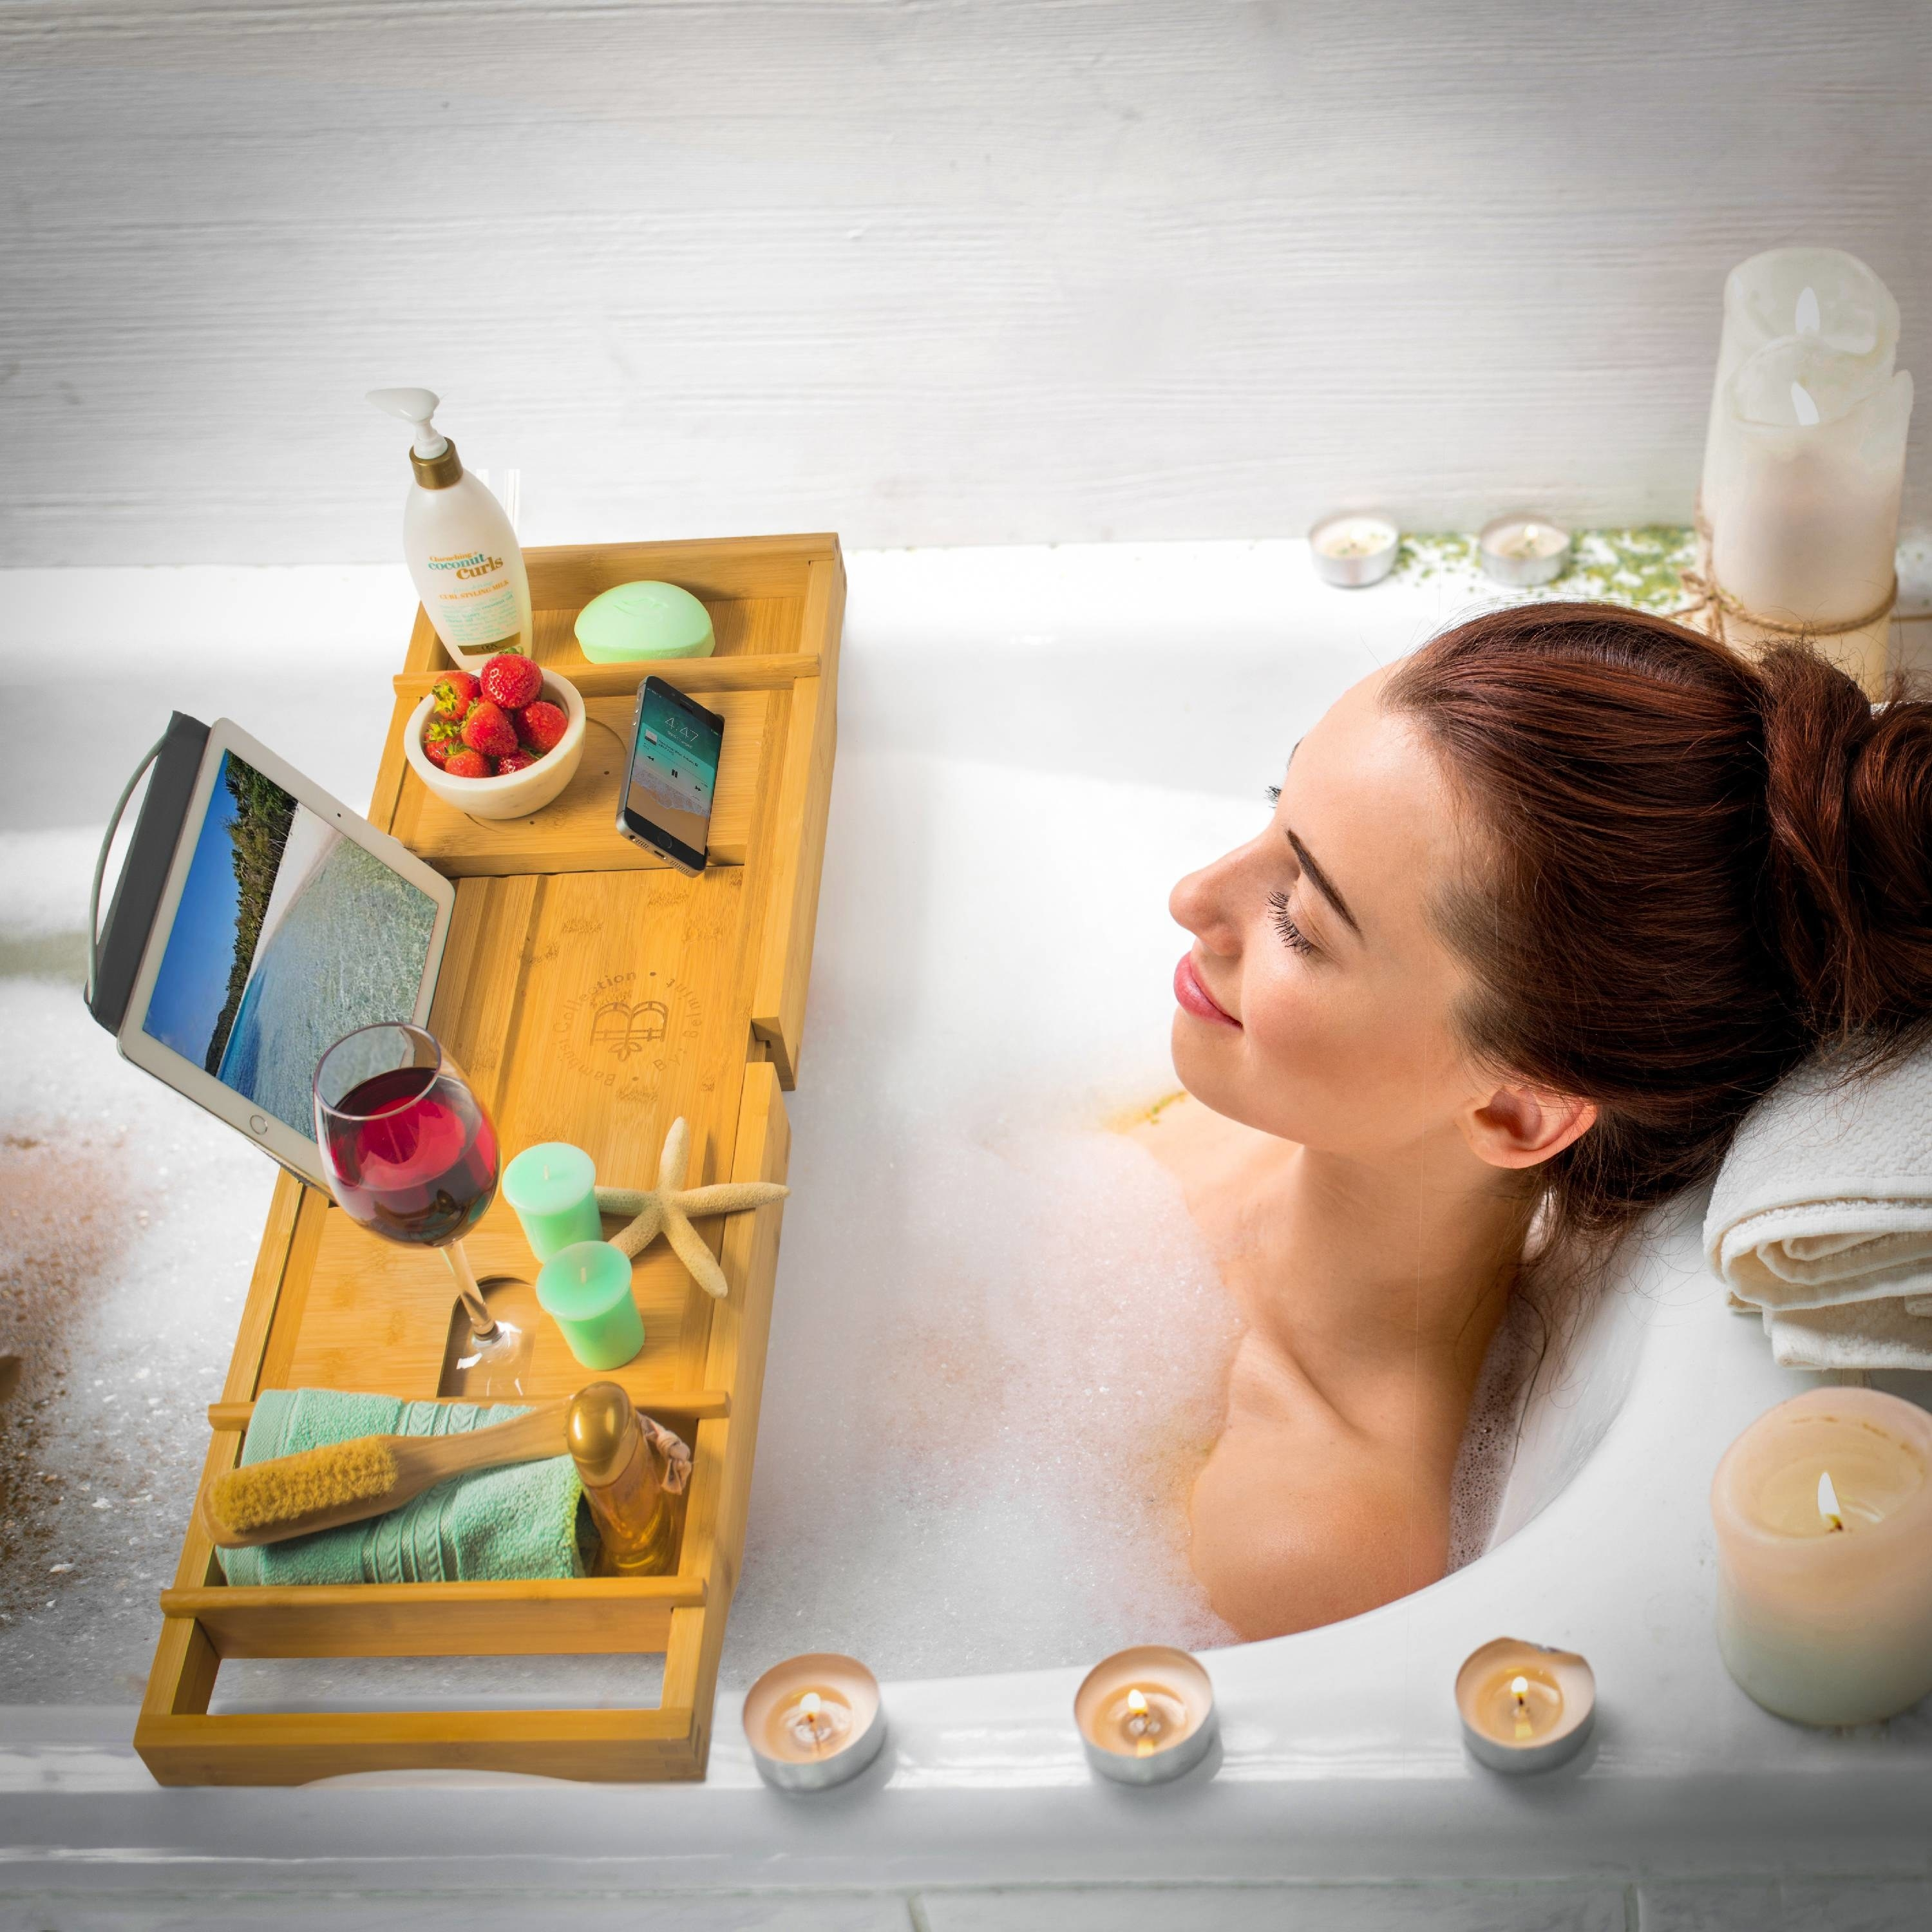 An image of a woman using a bamboo bath caddy tray